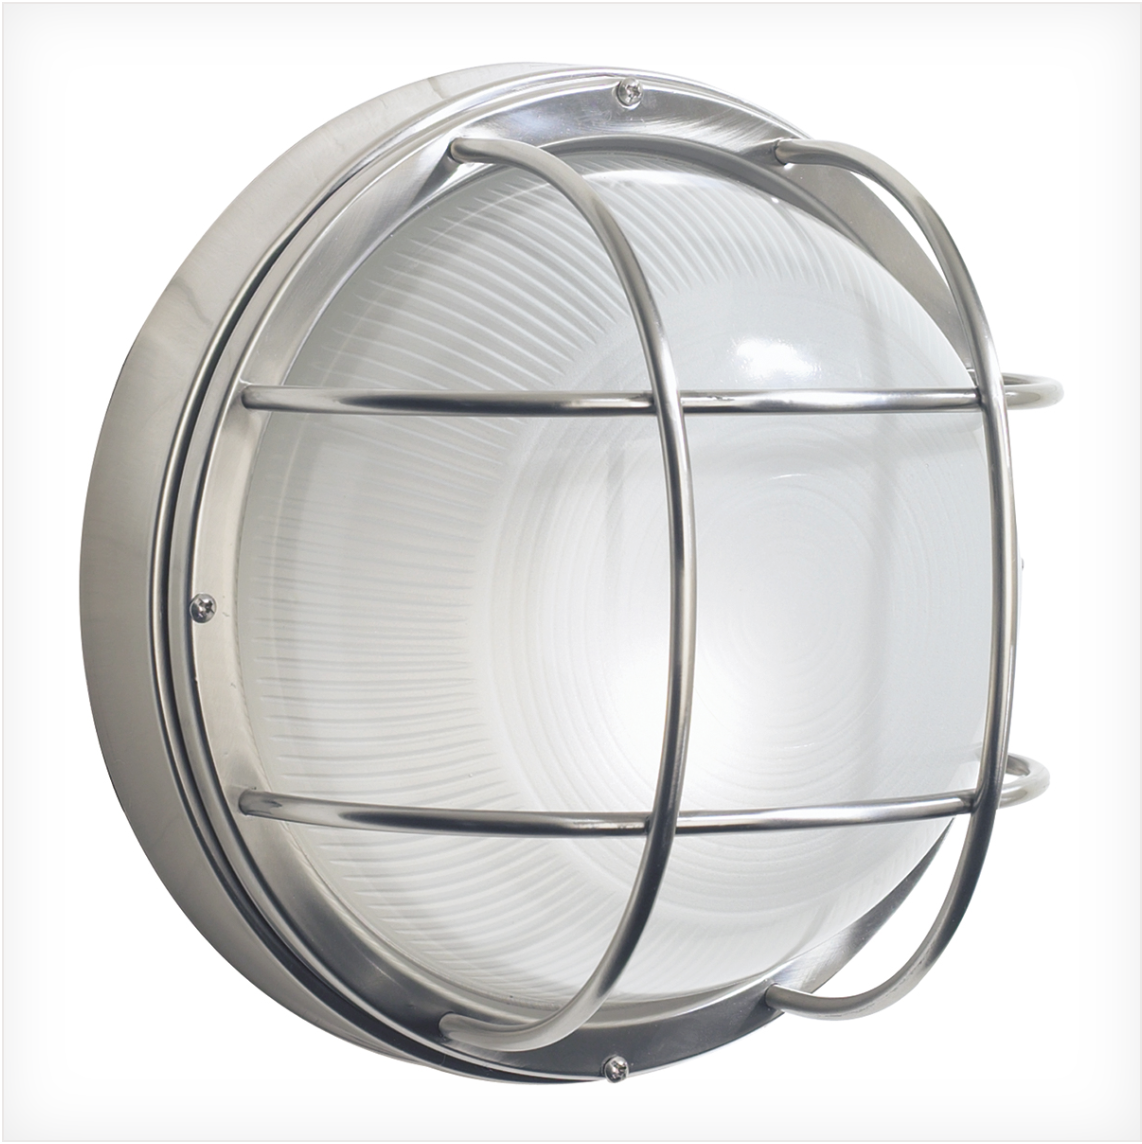 Bellingham Stainless Steel Exterior Round Wall Light - ID 6201